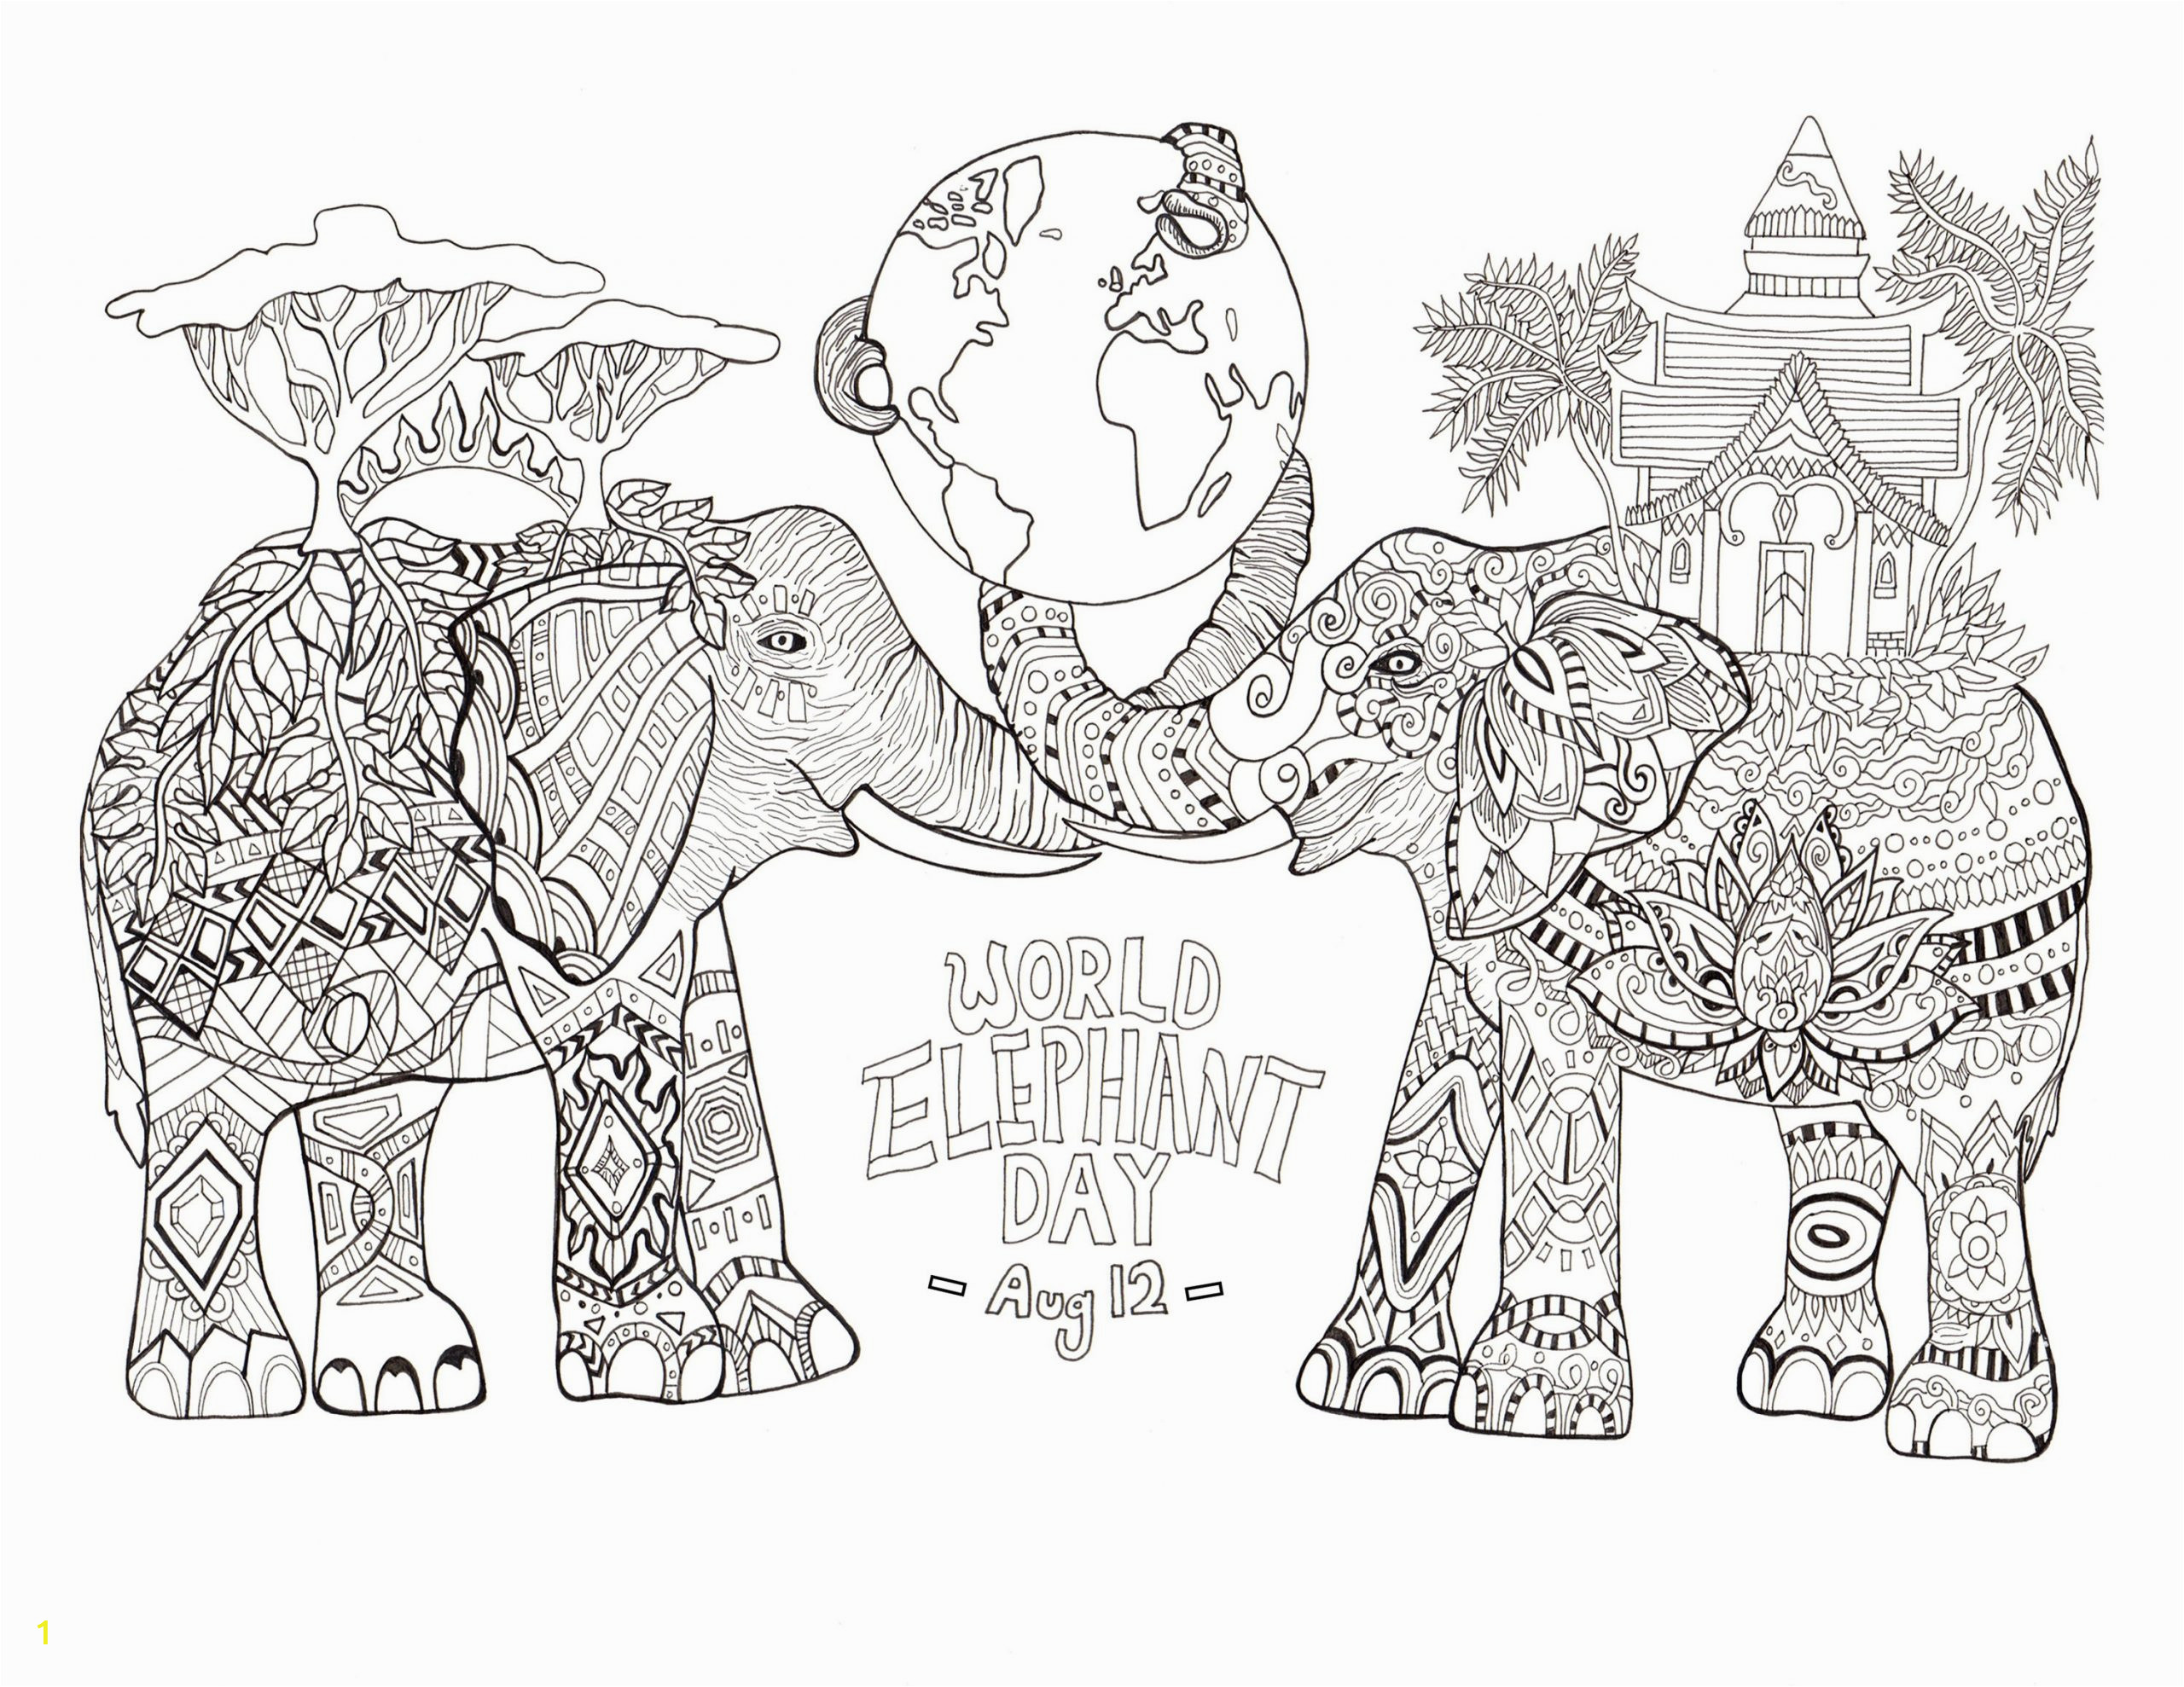 tree of lifeoring pages disney free kids celtic printable scaled knotwork coloring color for adults life page patterns making knot easy knots dragon art small designs